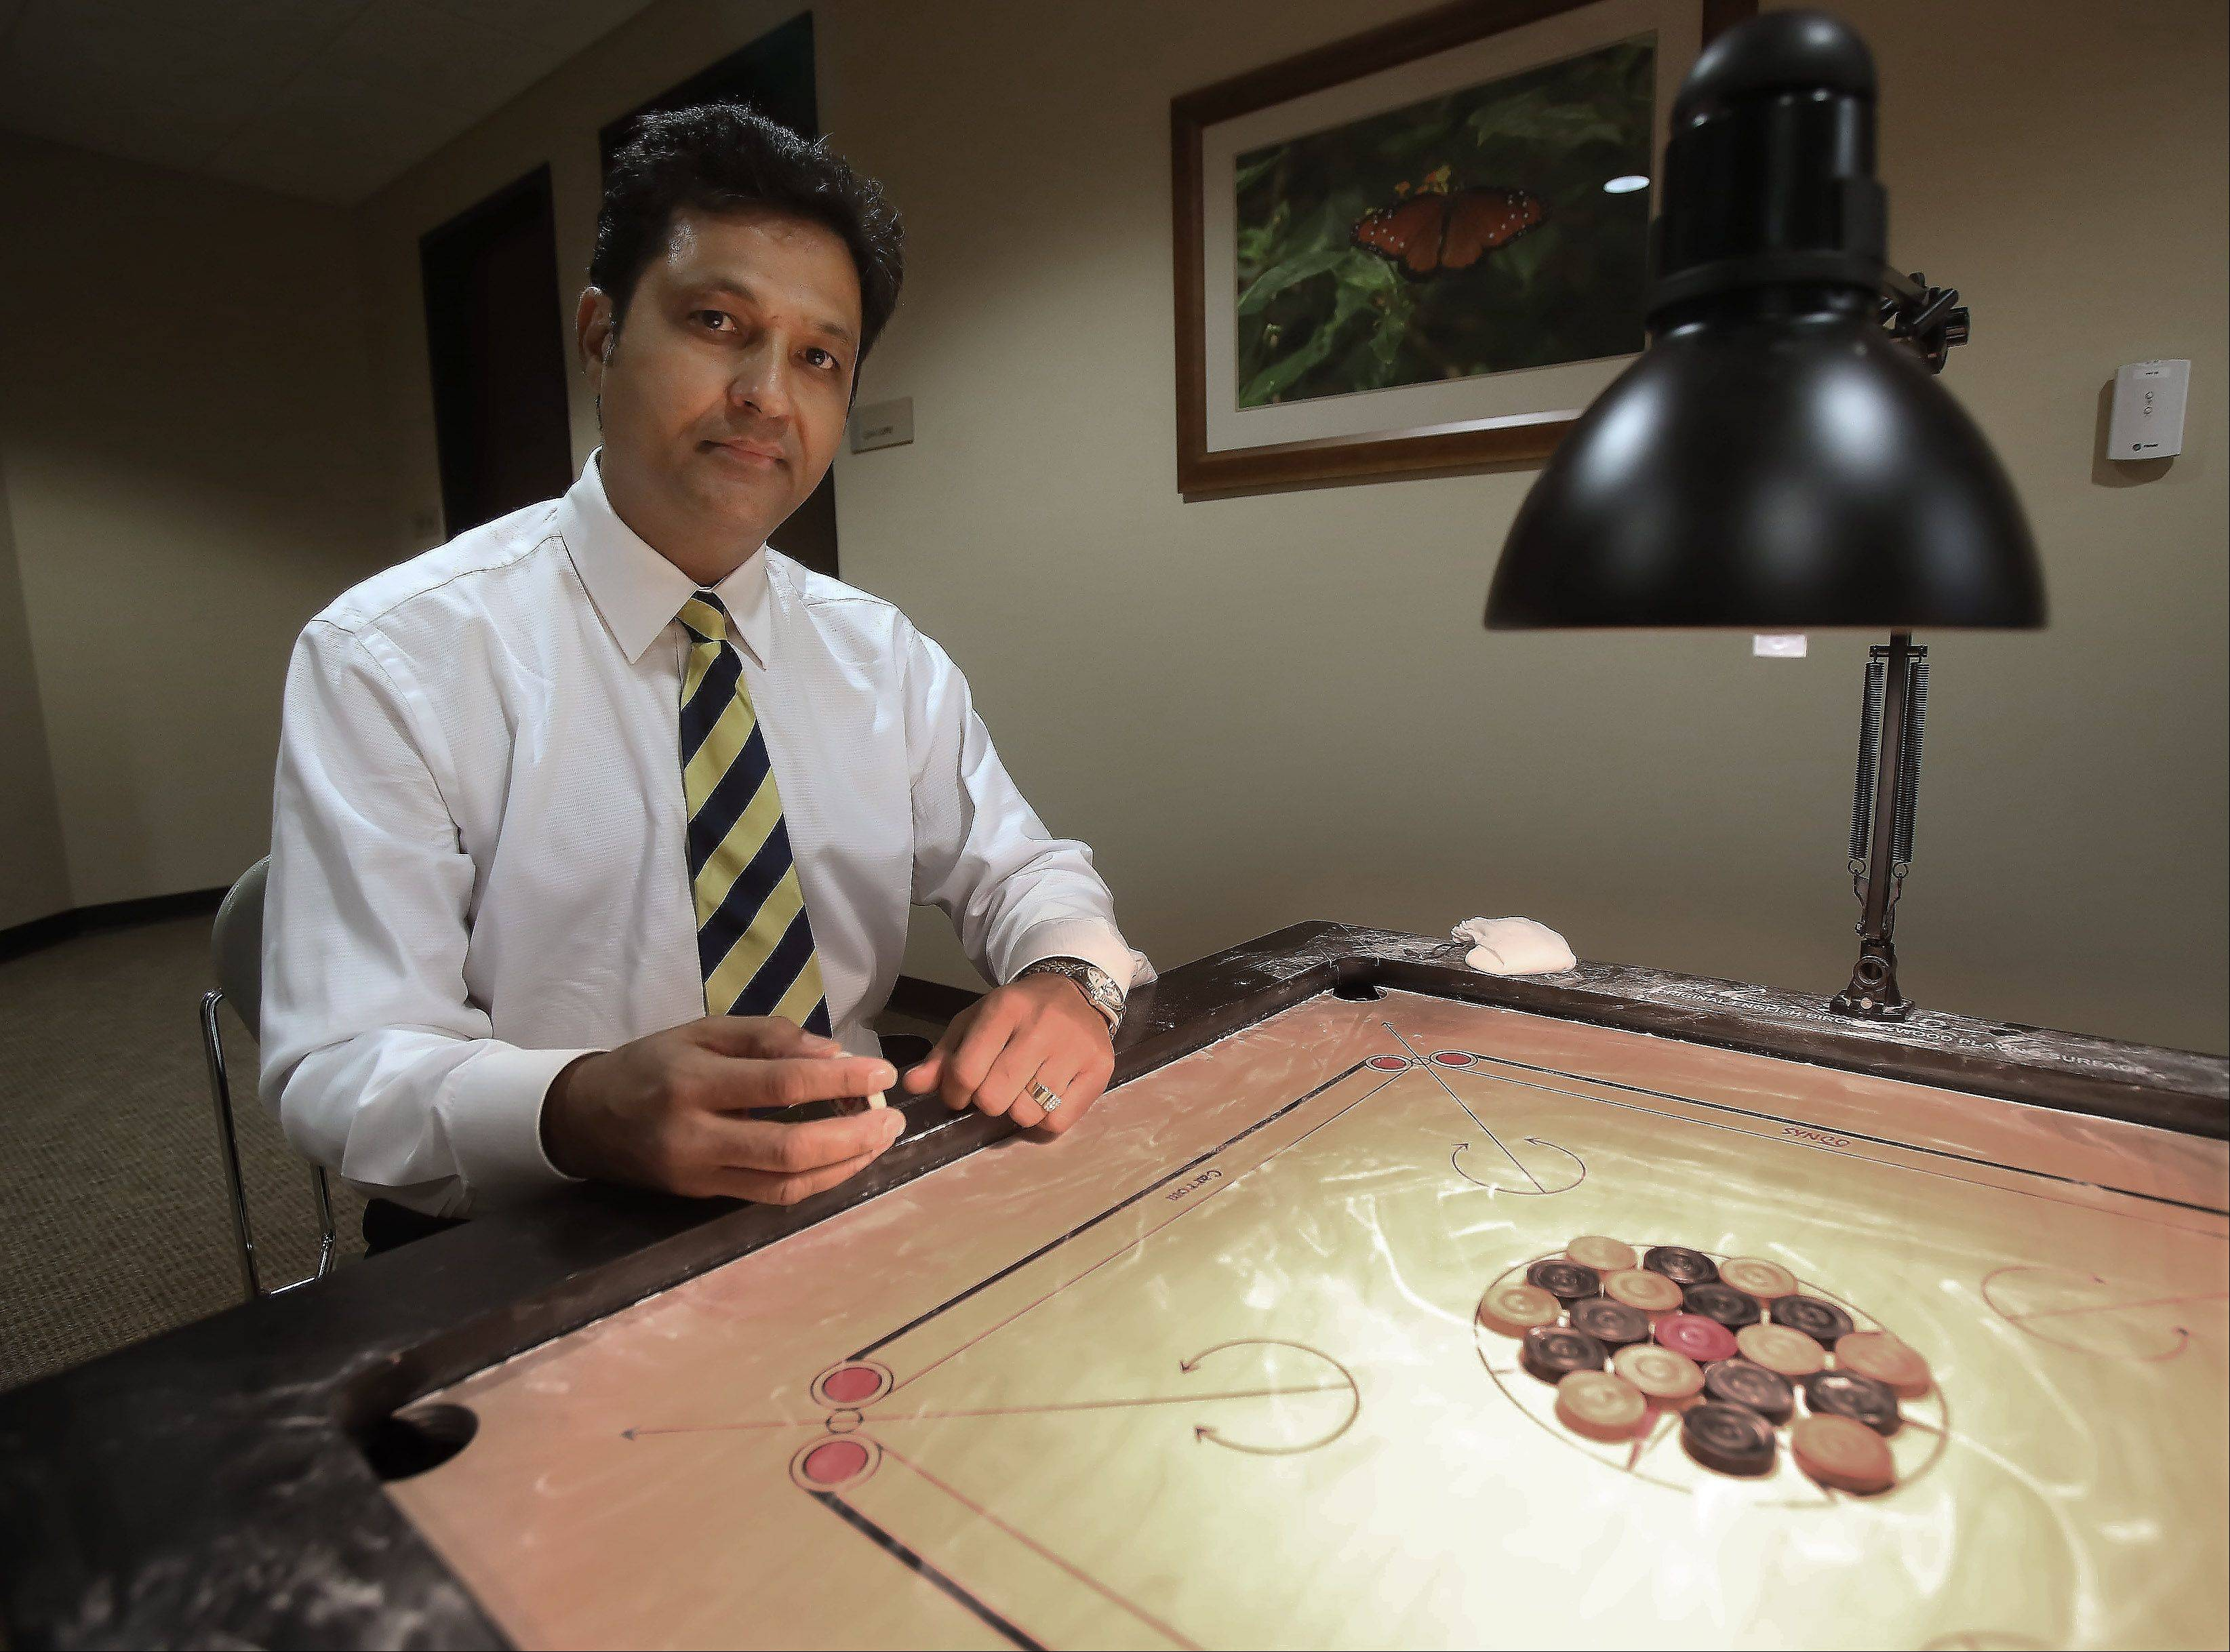 Vista Health oncologist Dr. Nilesh Mehta says the game of carrom is similar to pool. Mehta is vice president of the U.S. Carrom Association and a champion himself.